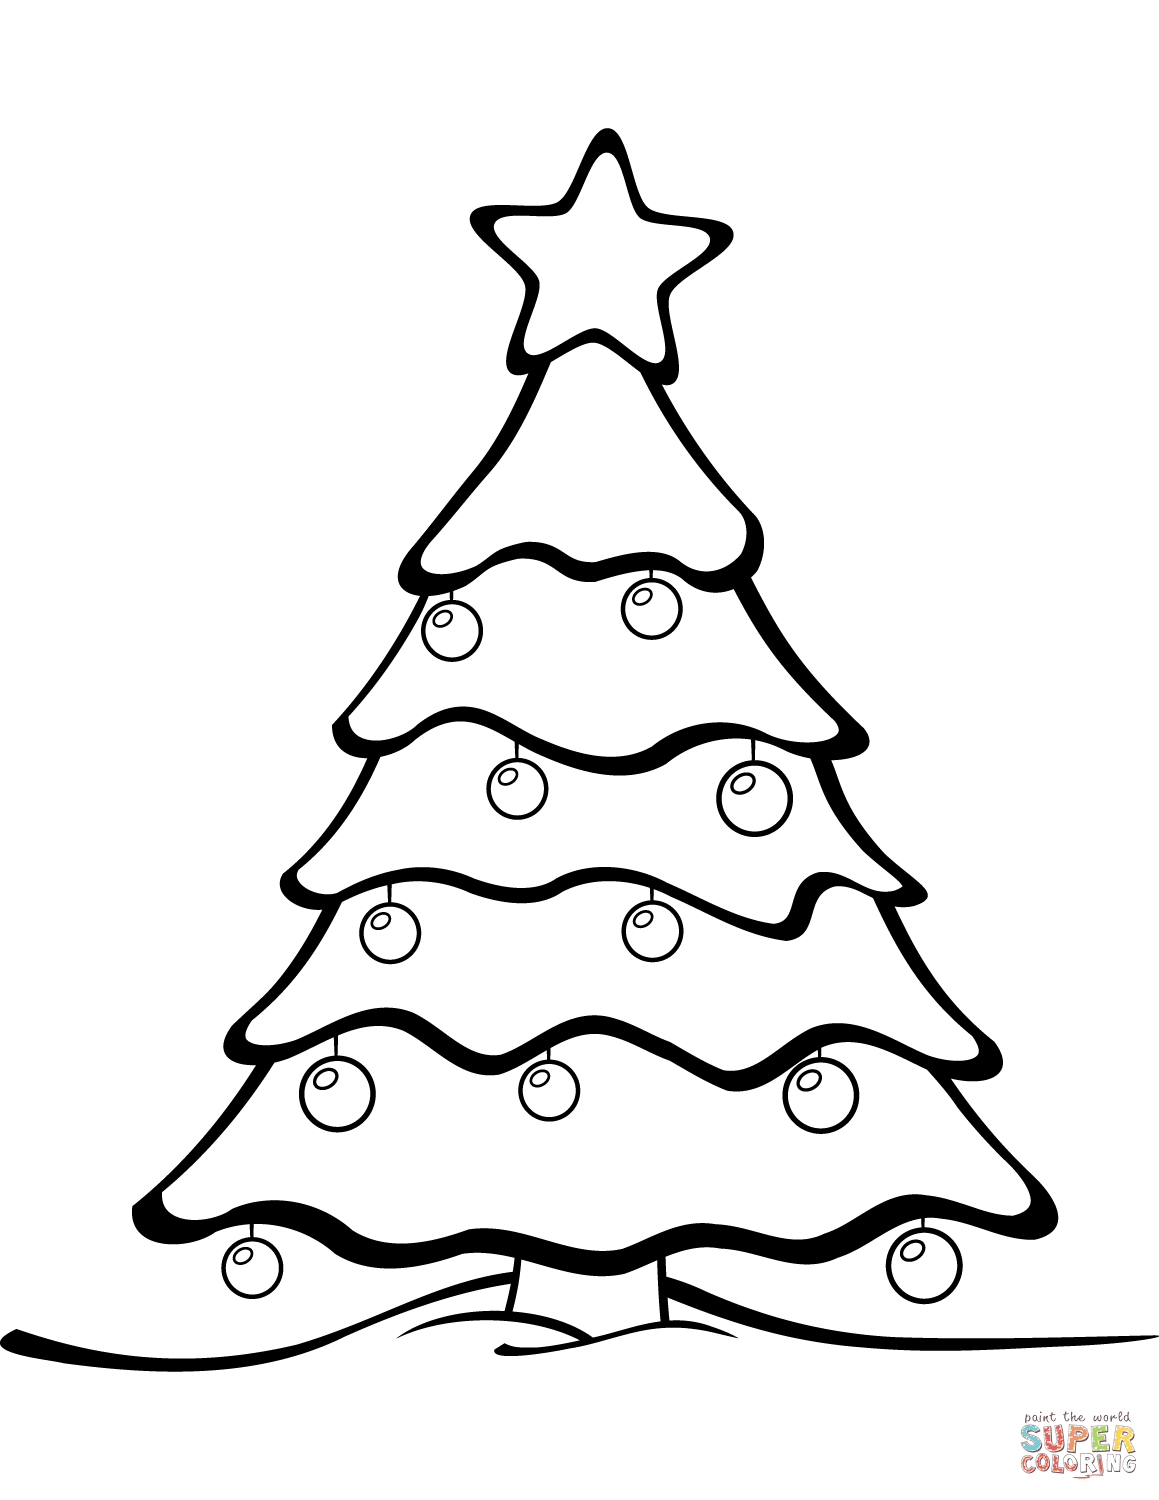 Merry Christmas Tree Coloring Page With From Category Select